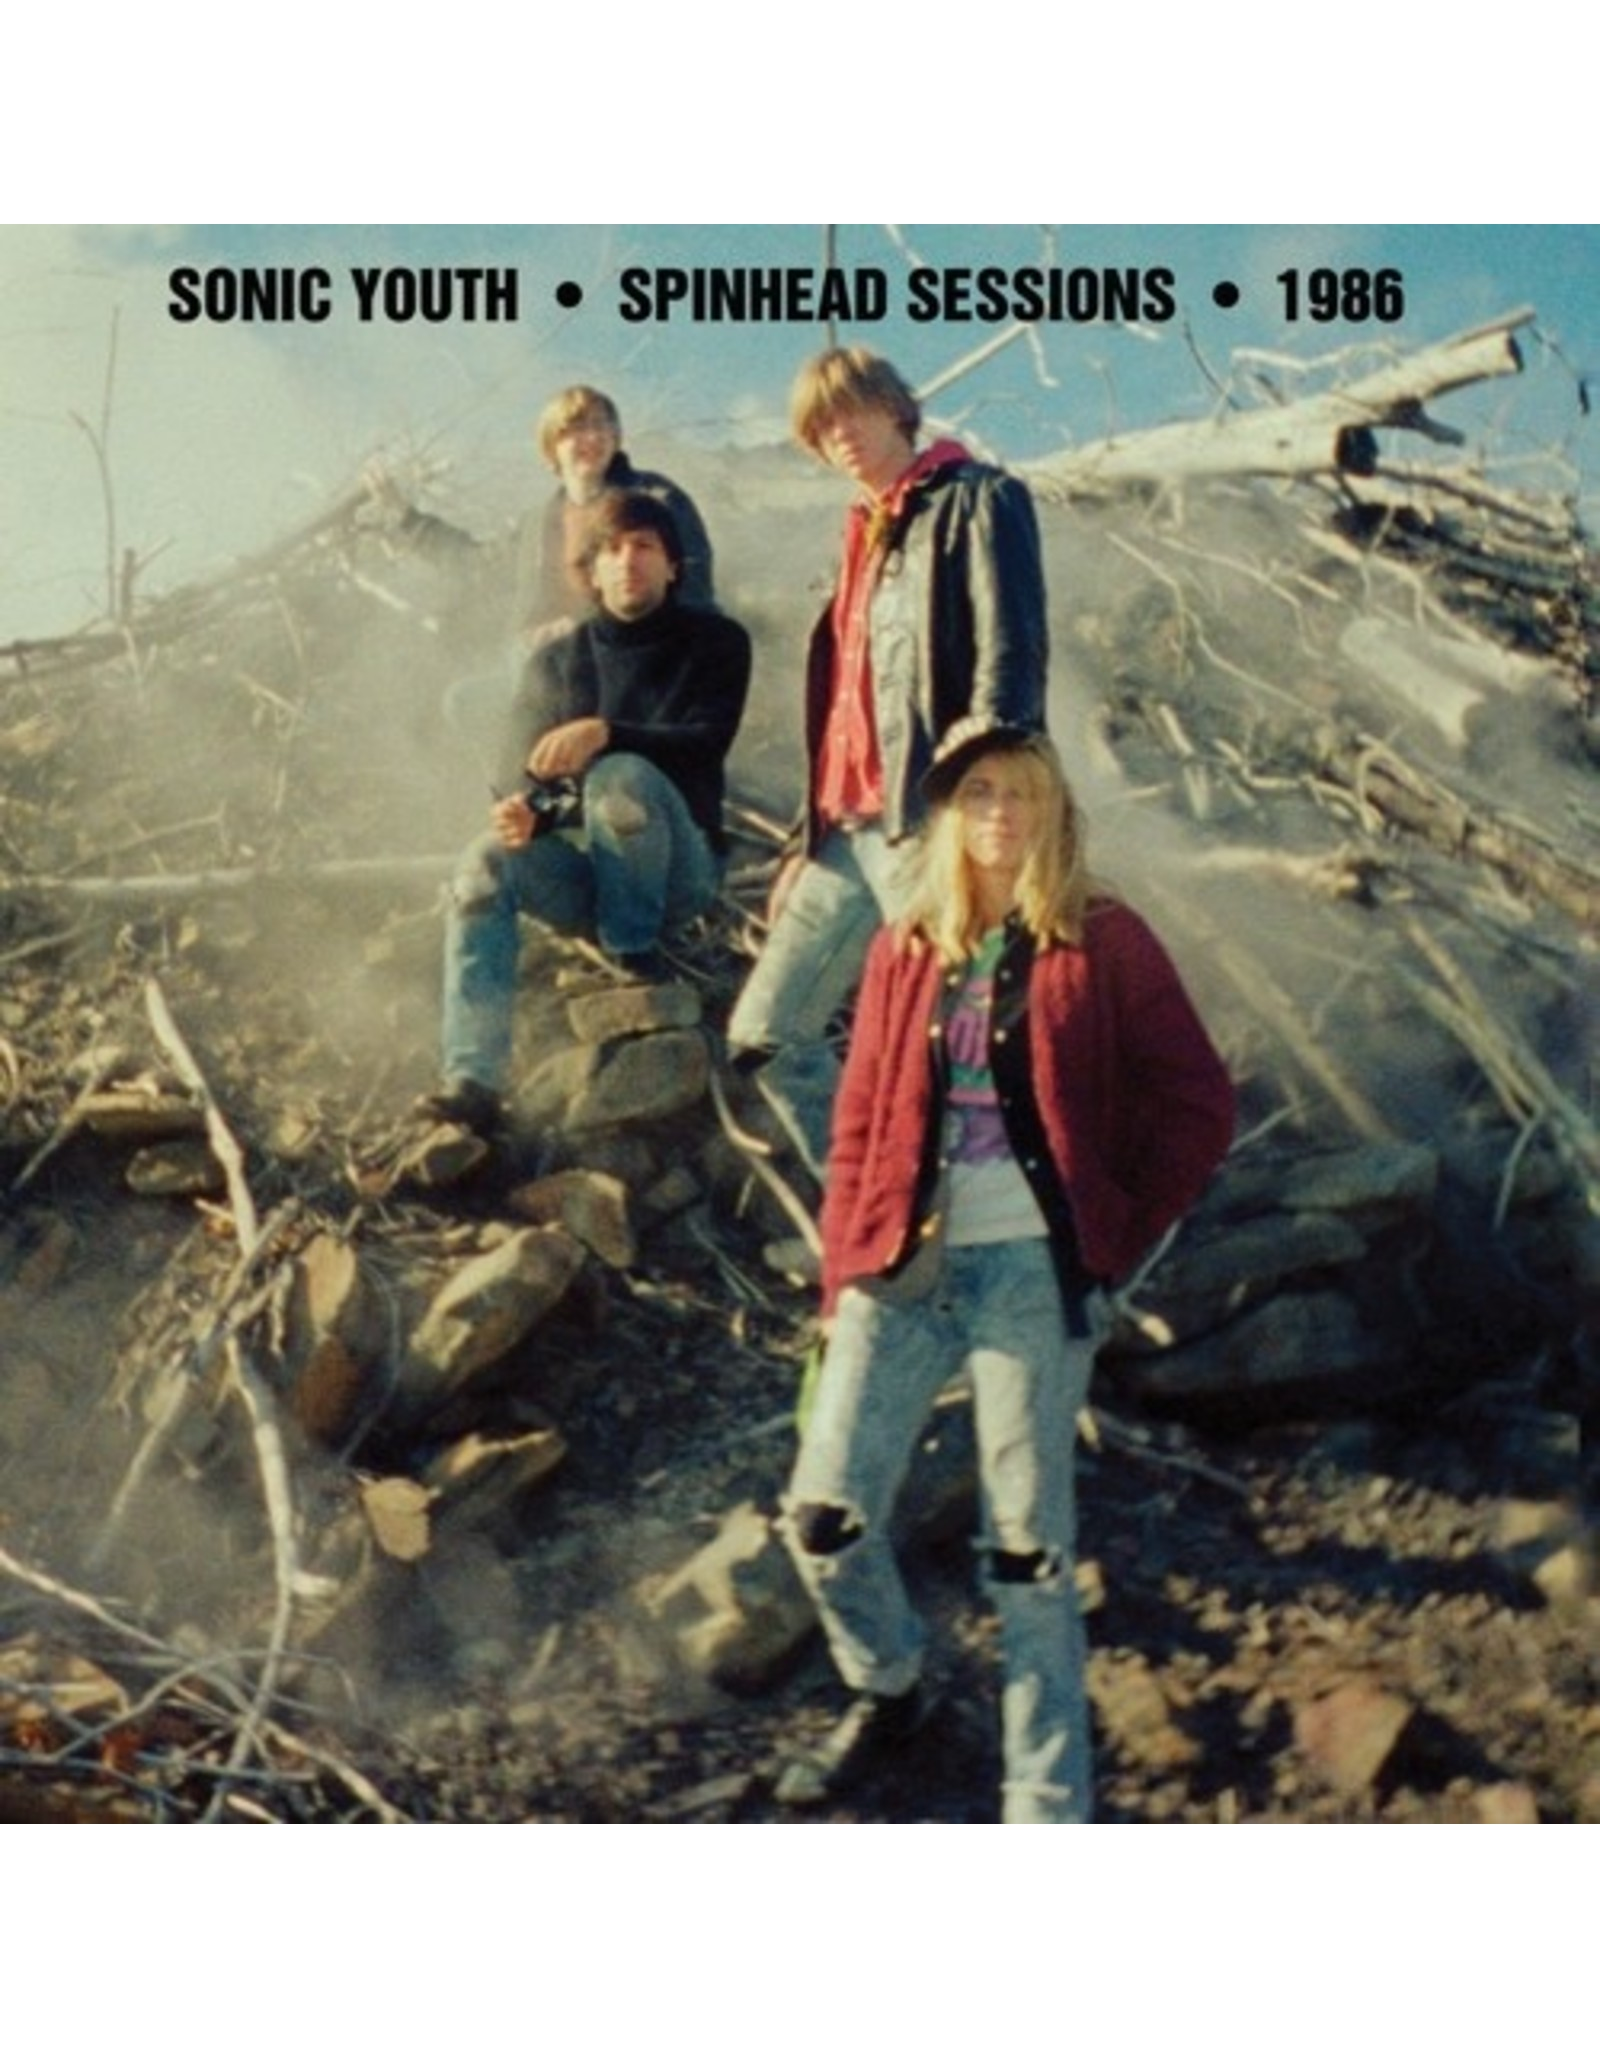 New Vinyl Sonic Youth - Spinhead Sessions LP